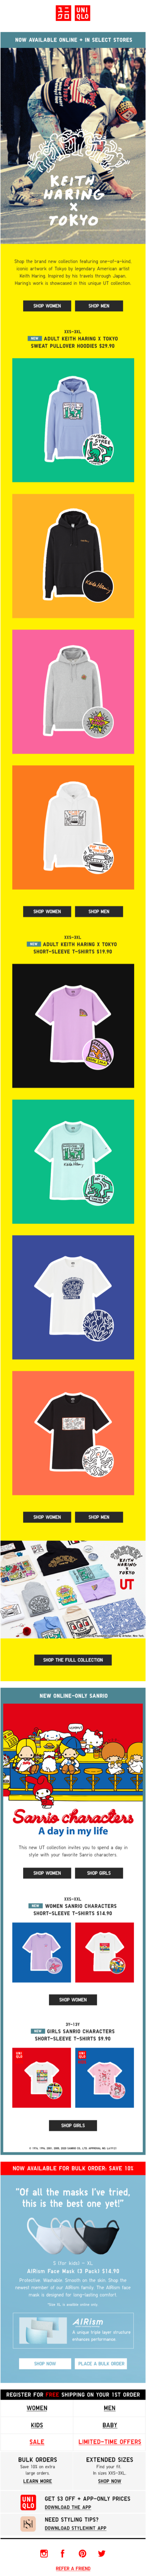 uniqlo-just-dropped-iconic-tees-from-keith-haring